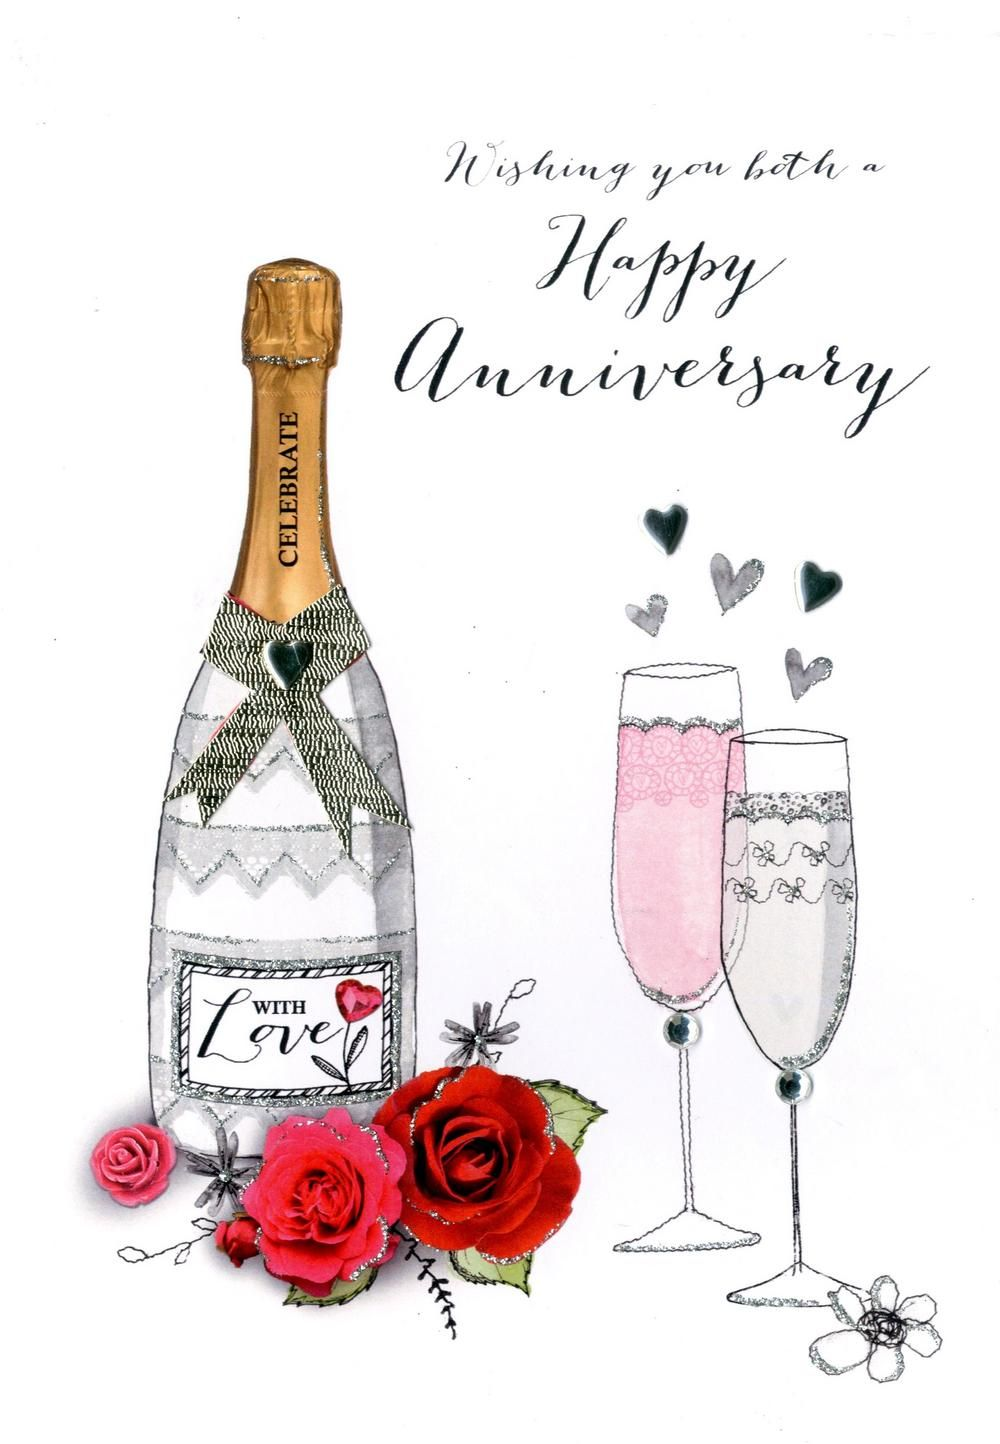 Wishing You Both Happy Anniversary Greeting Card Happy